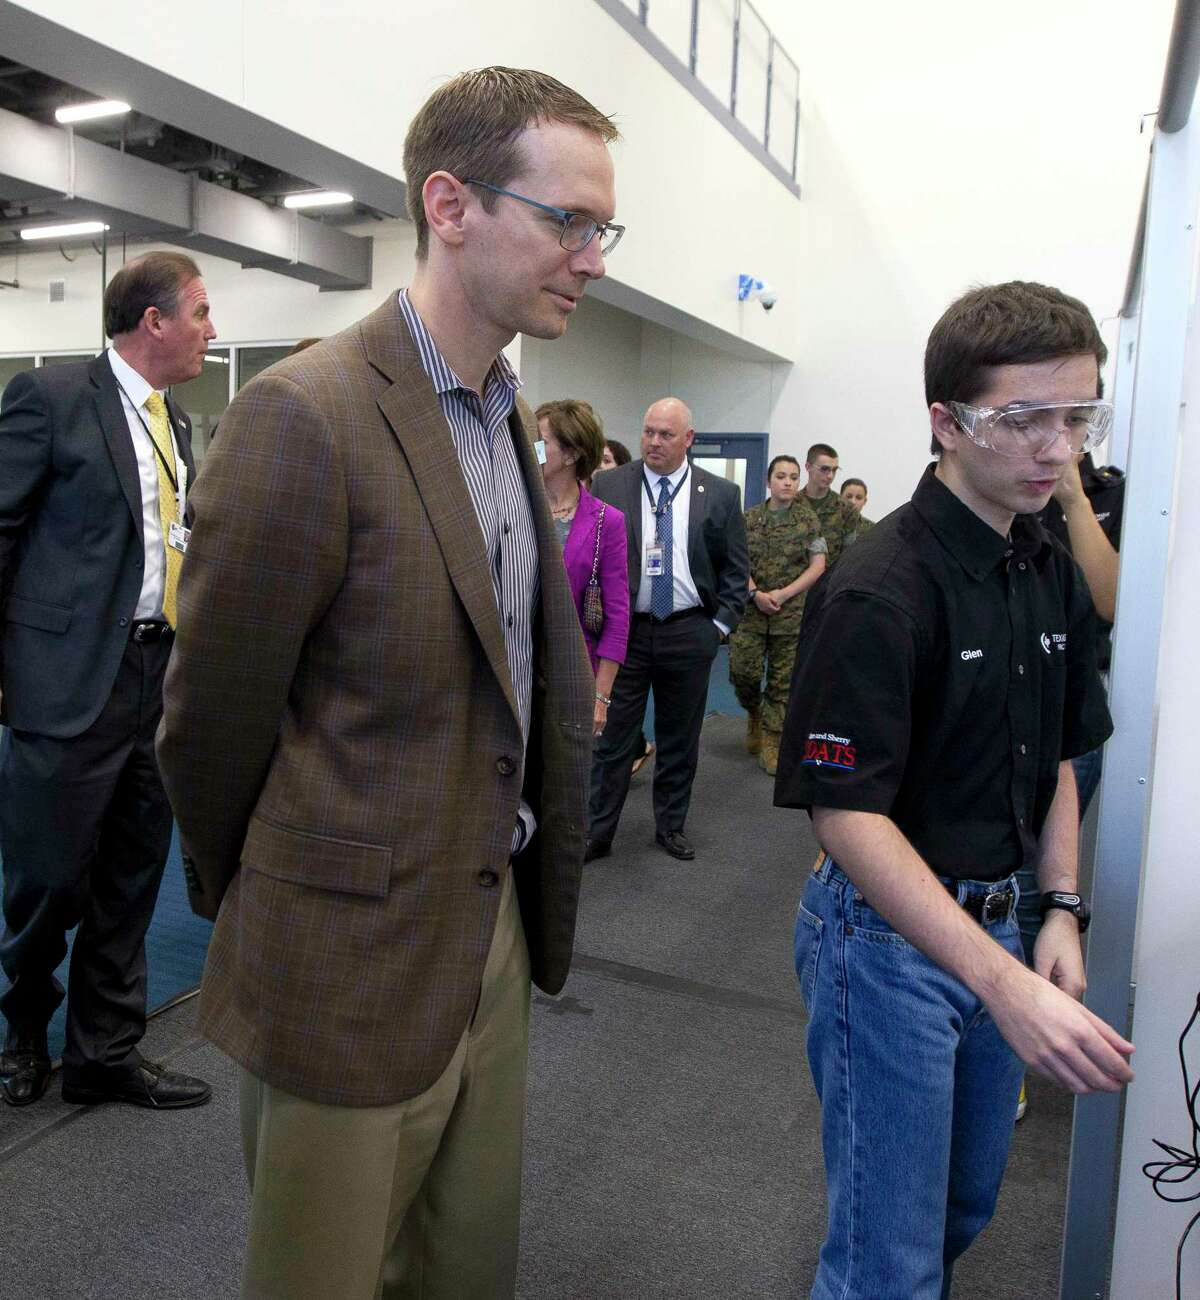 Texas Commissioner of Education Mike Morath, left, receives instructions from Glen Lauratsen on how to control a robot built by student from Conroe ISD Academy of Science and Technology during a tour of College Park High School, Thursday, May 4, 2017, in The Woodlands.